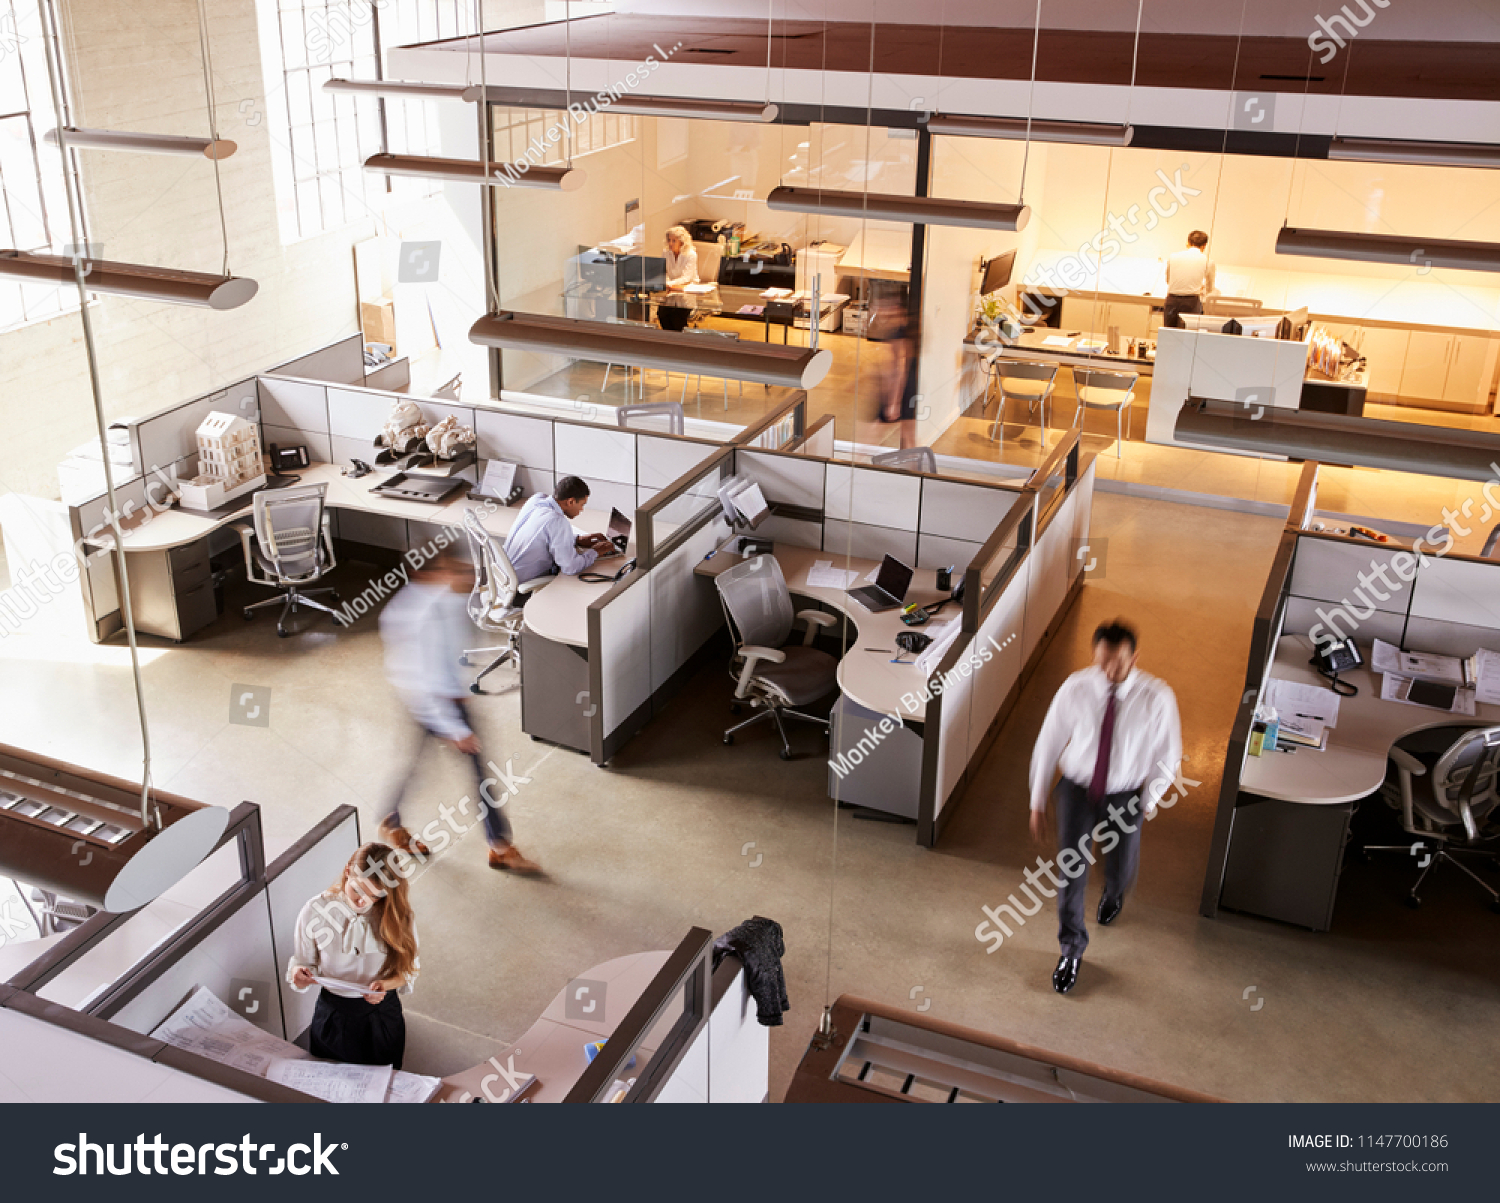 stock-photo-elevated-view-of-staff-working-in-a-busy-open-plan-office-1147700186.jpg